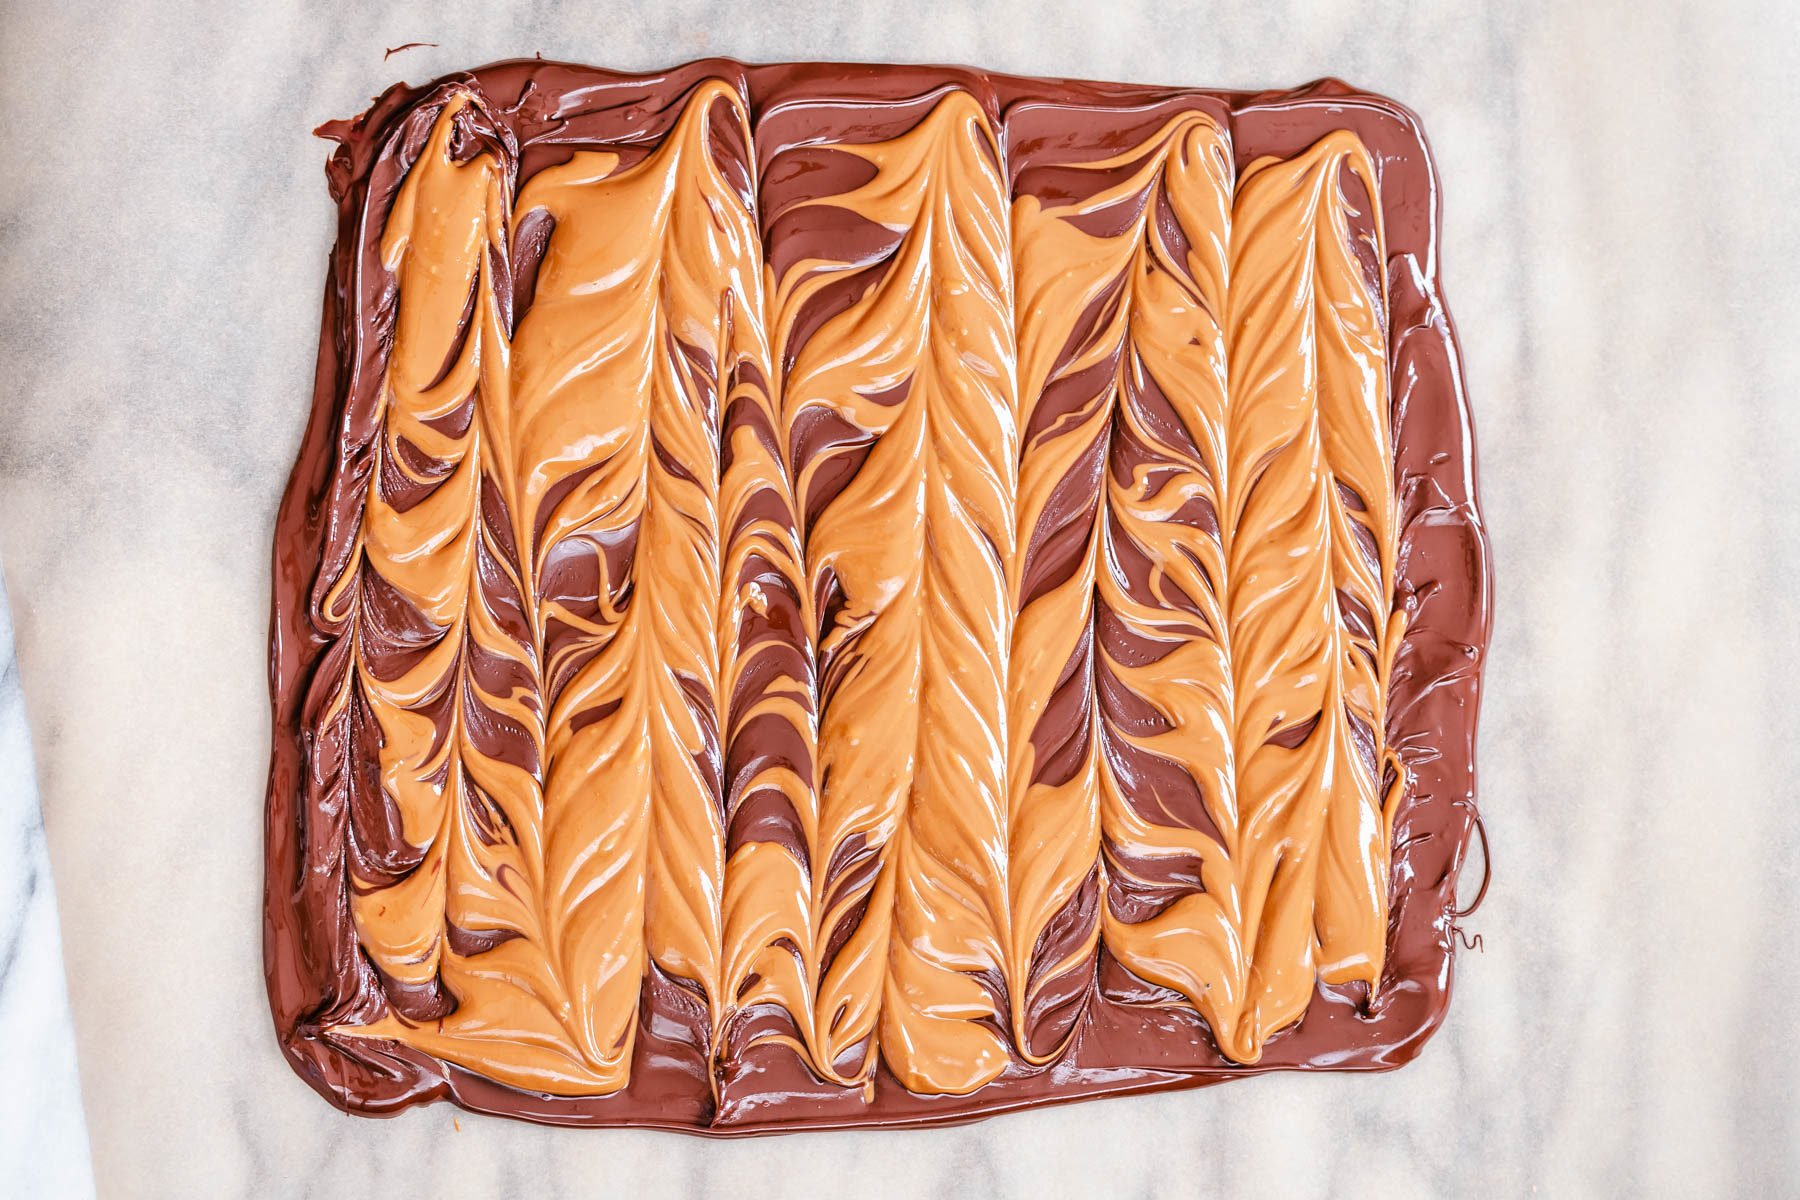 peanut butter cup chocolate bark on a sheet of parchment paper